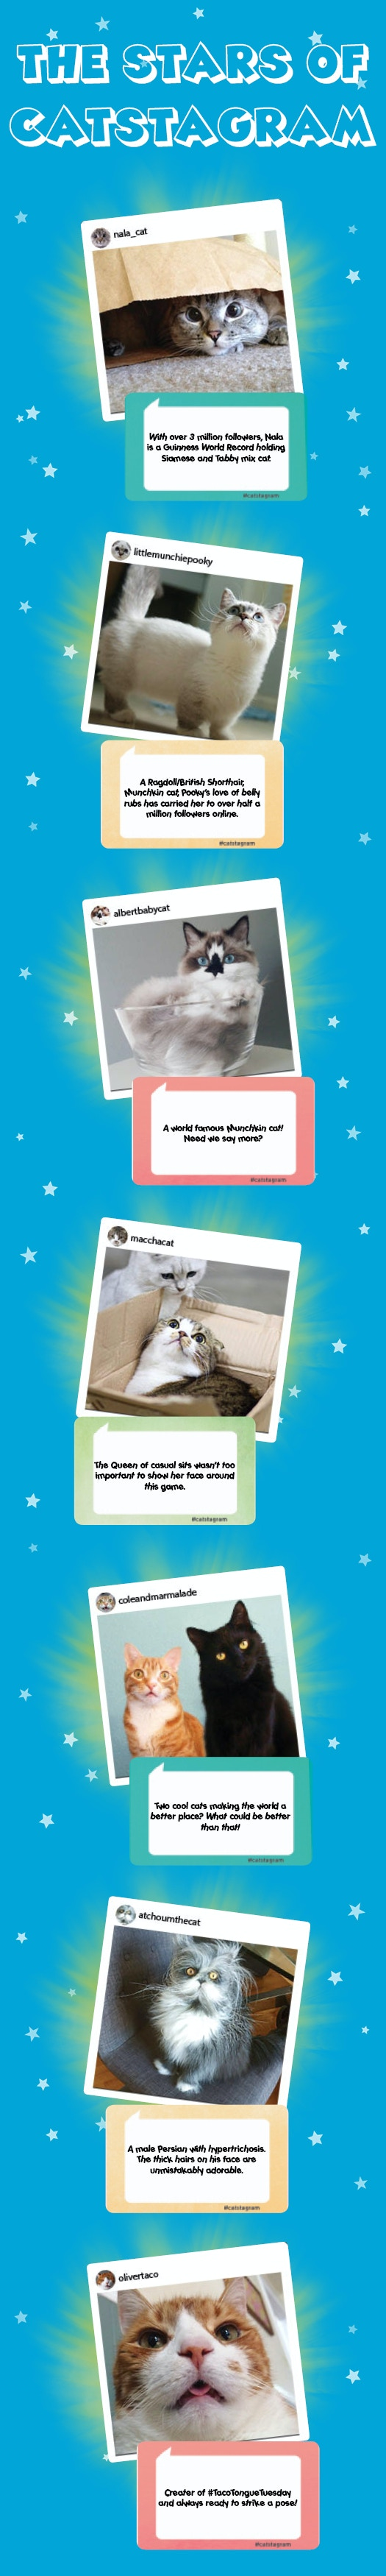 Many more celebri-kitties are really excited to be a part of the Catstagram game! Stay Tuned :3